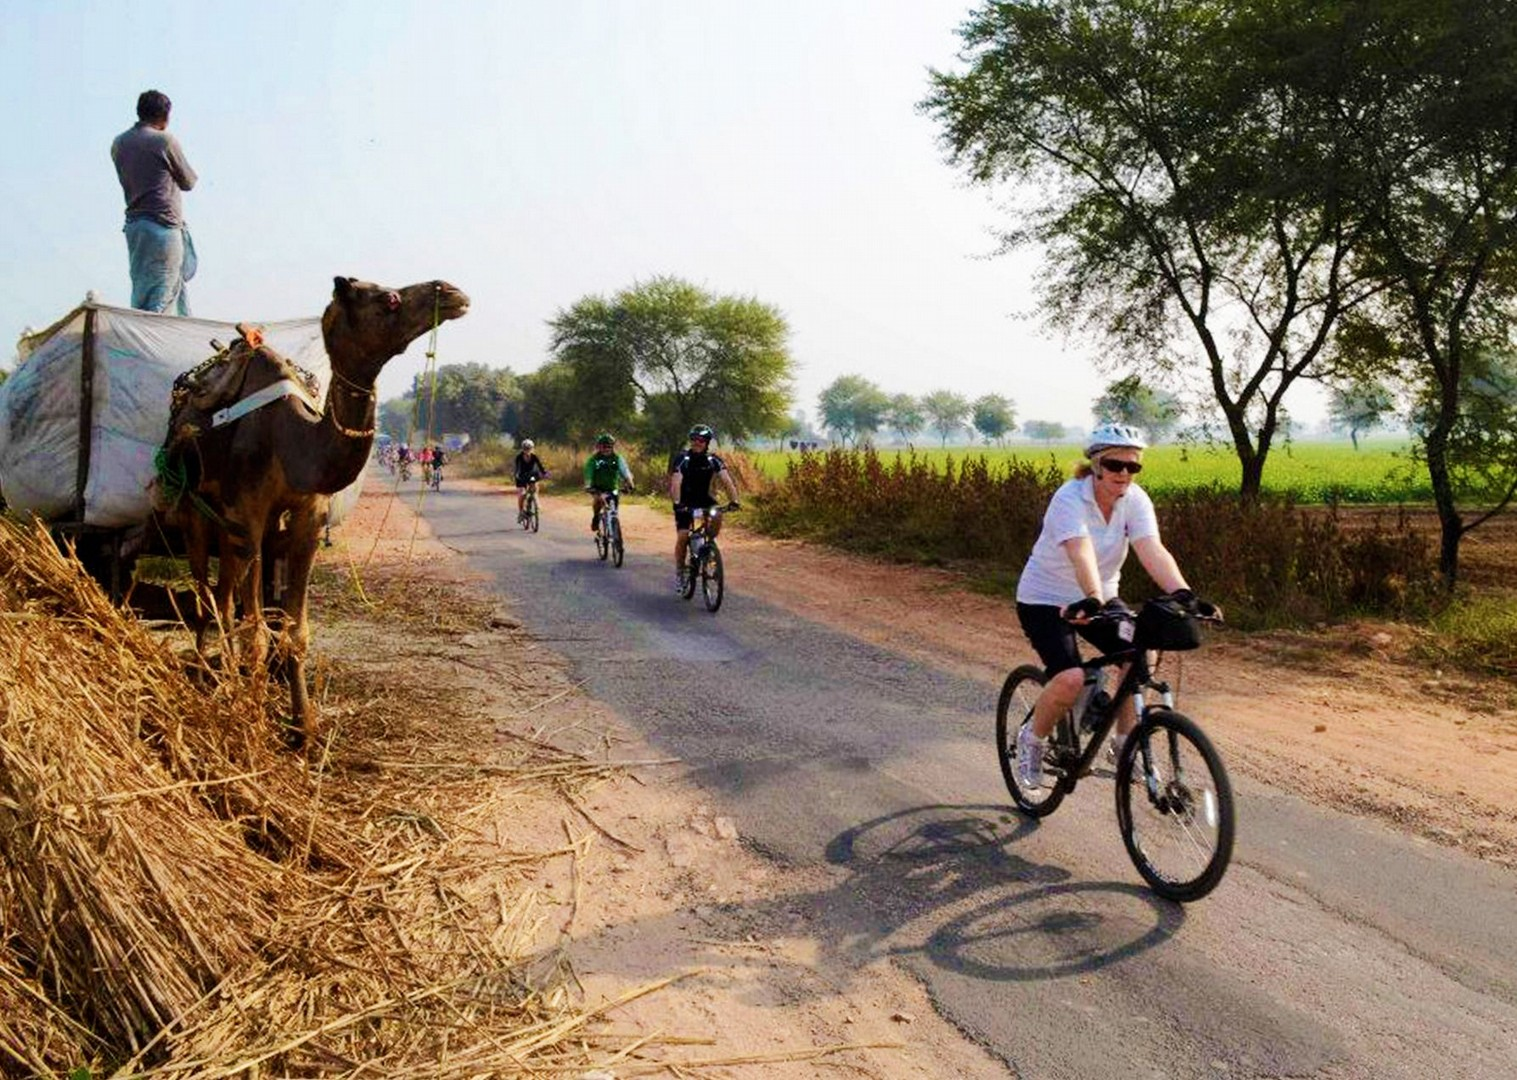 598363_10151549081727926_1113961824_n.jpg - India - Palaces and Lakes of Rajasthan - Cycling Adventures